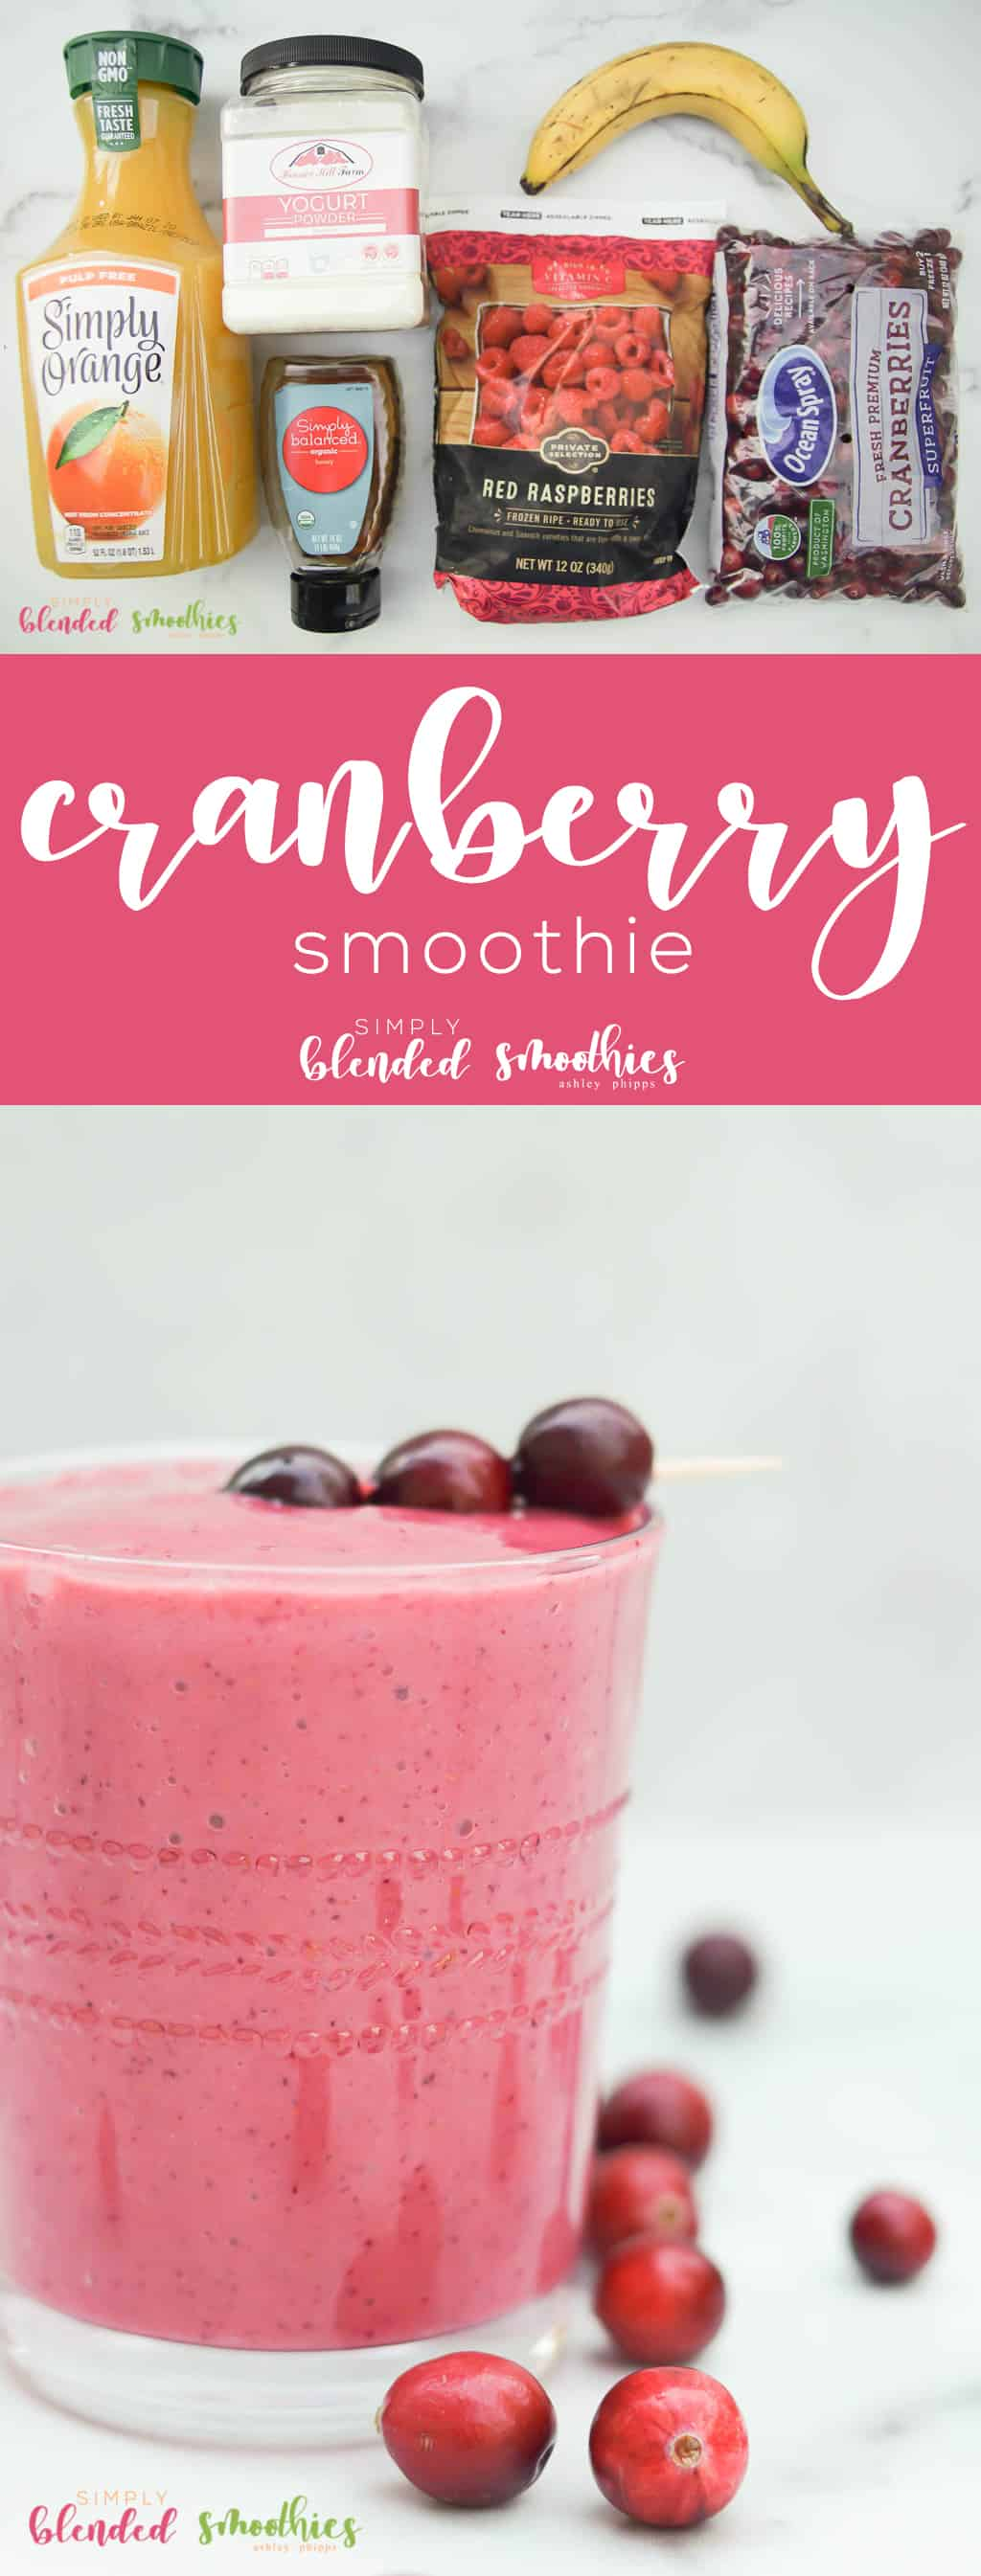 Cranberry Smoothie Recipe with Ingredients